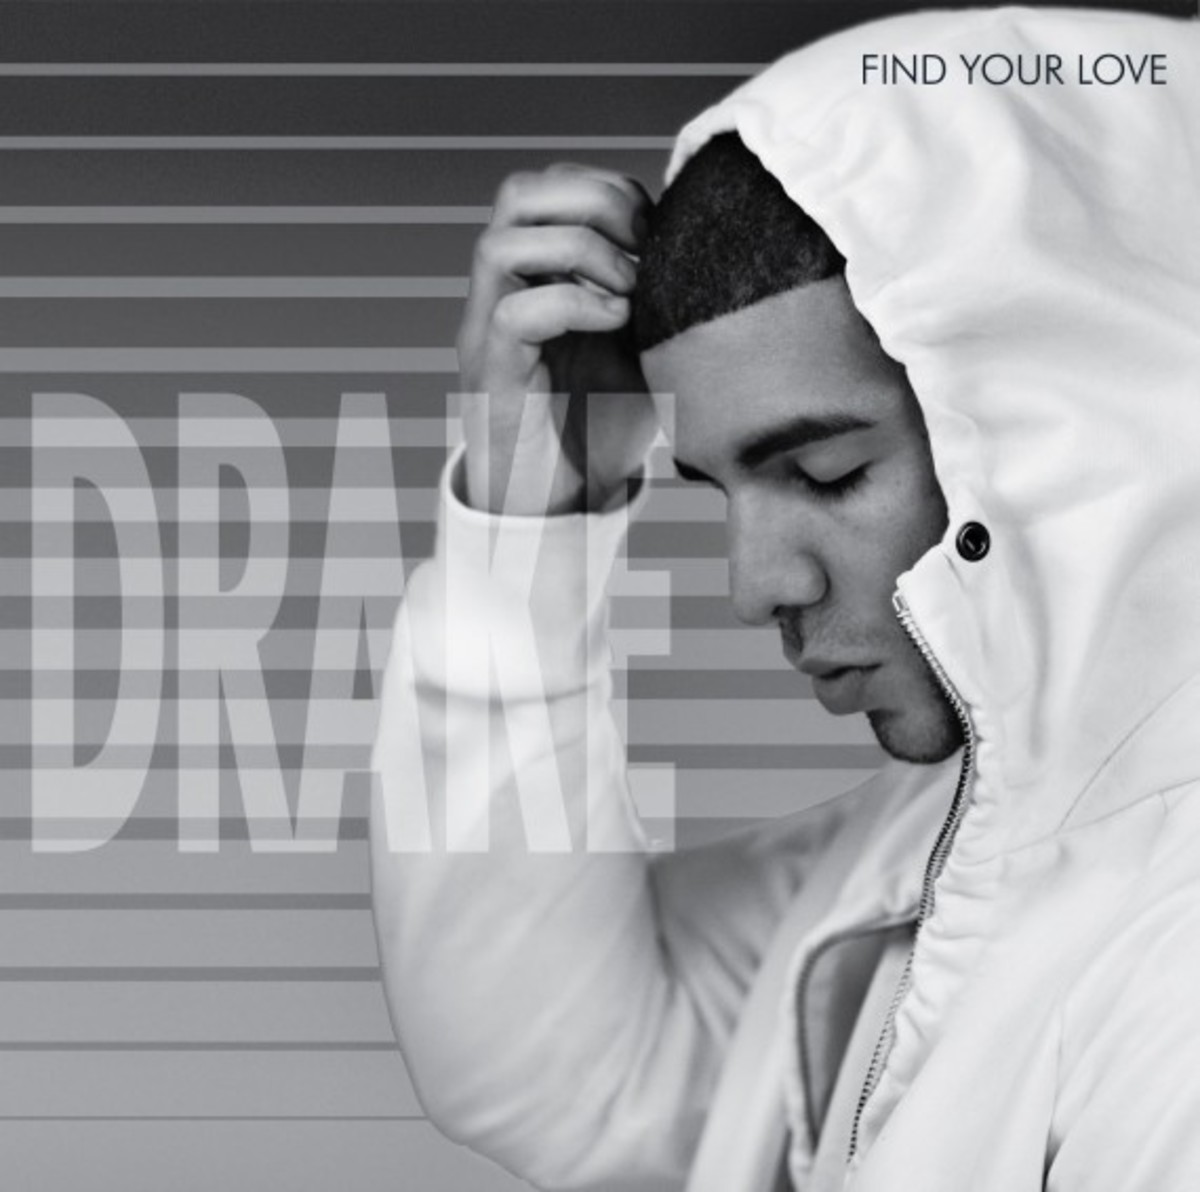 drake-find-your-love-by-kanye-west-1